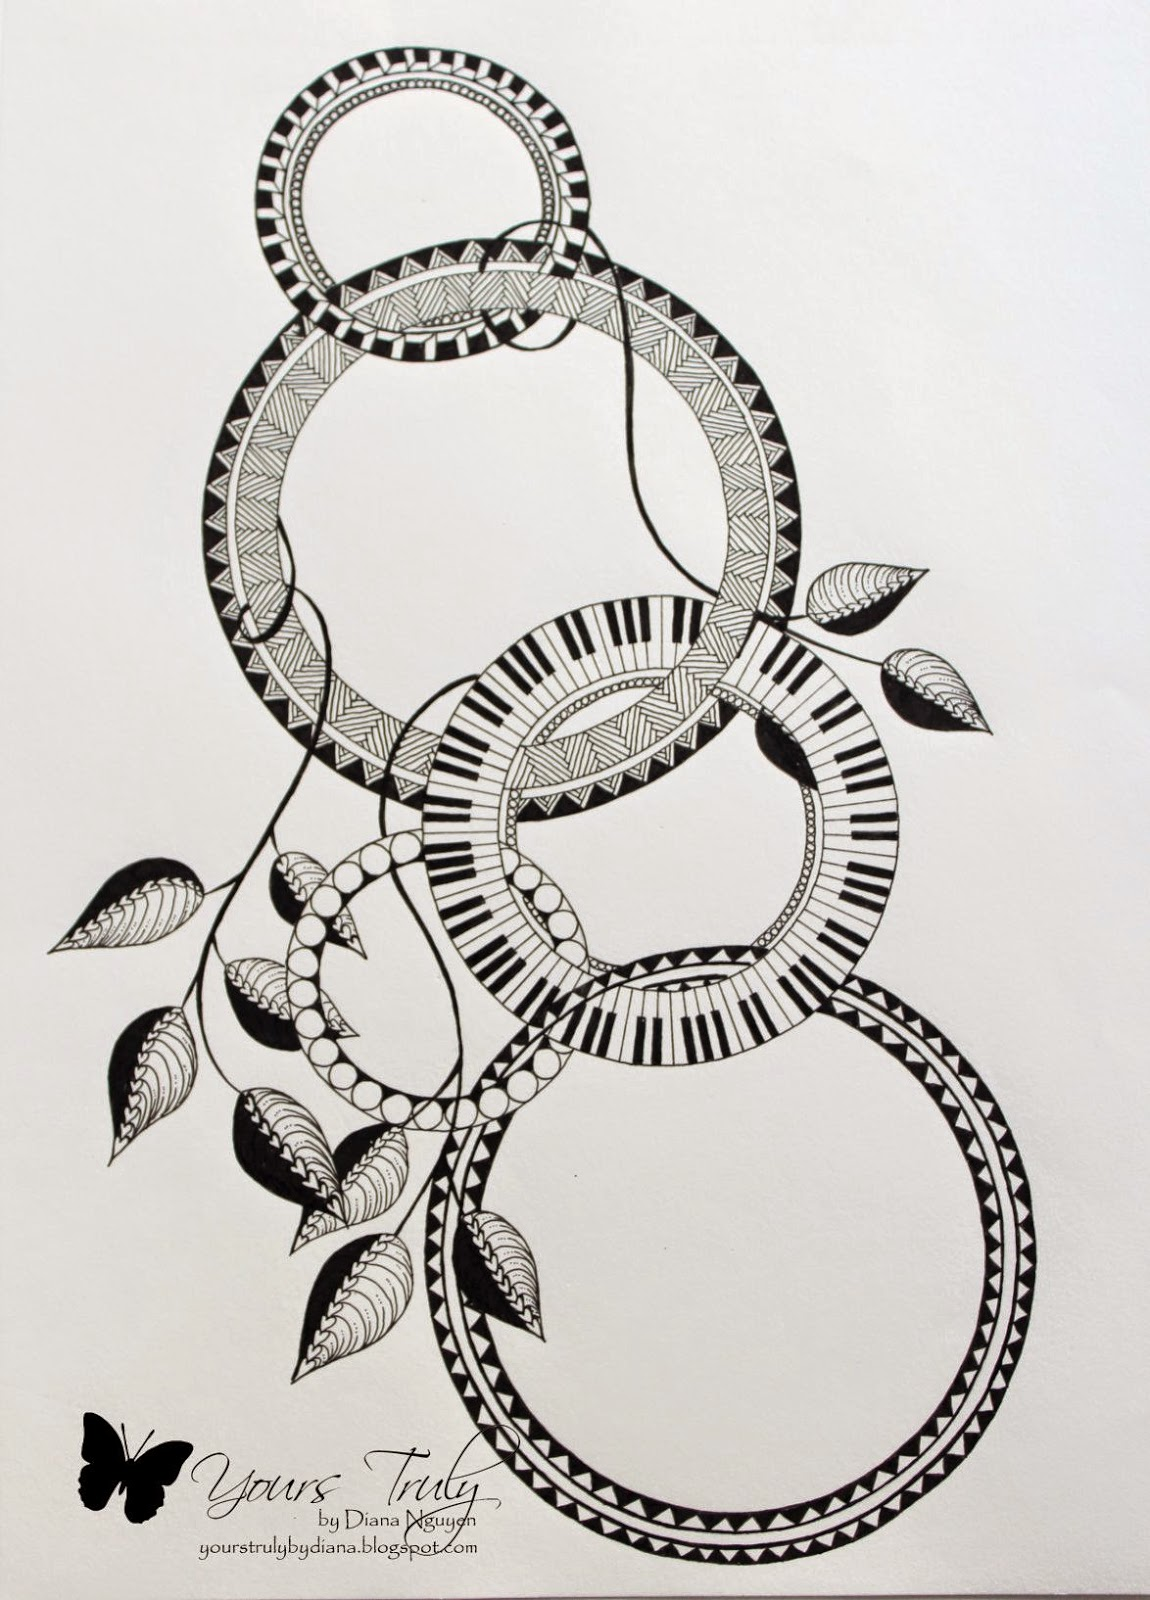 Diana Nguyen, zentangle, Compass